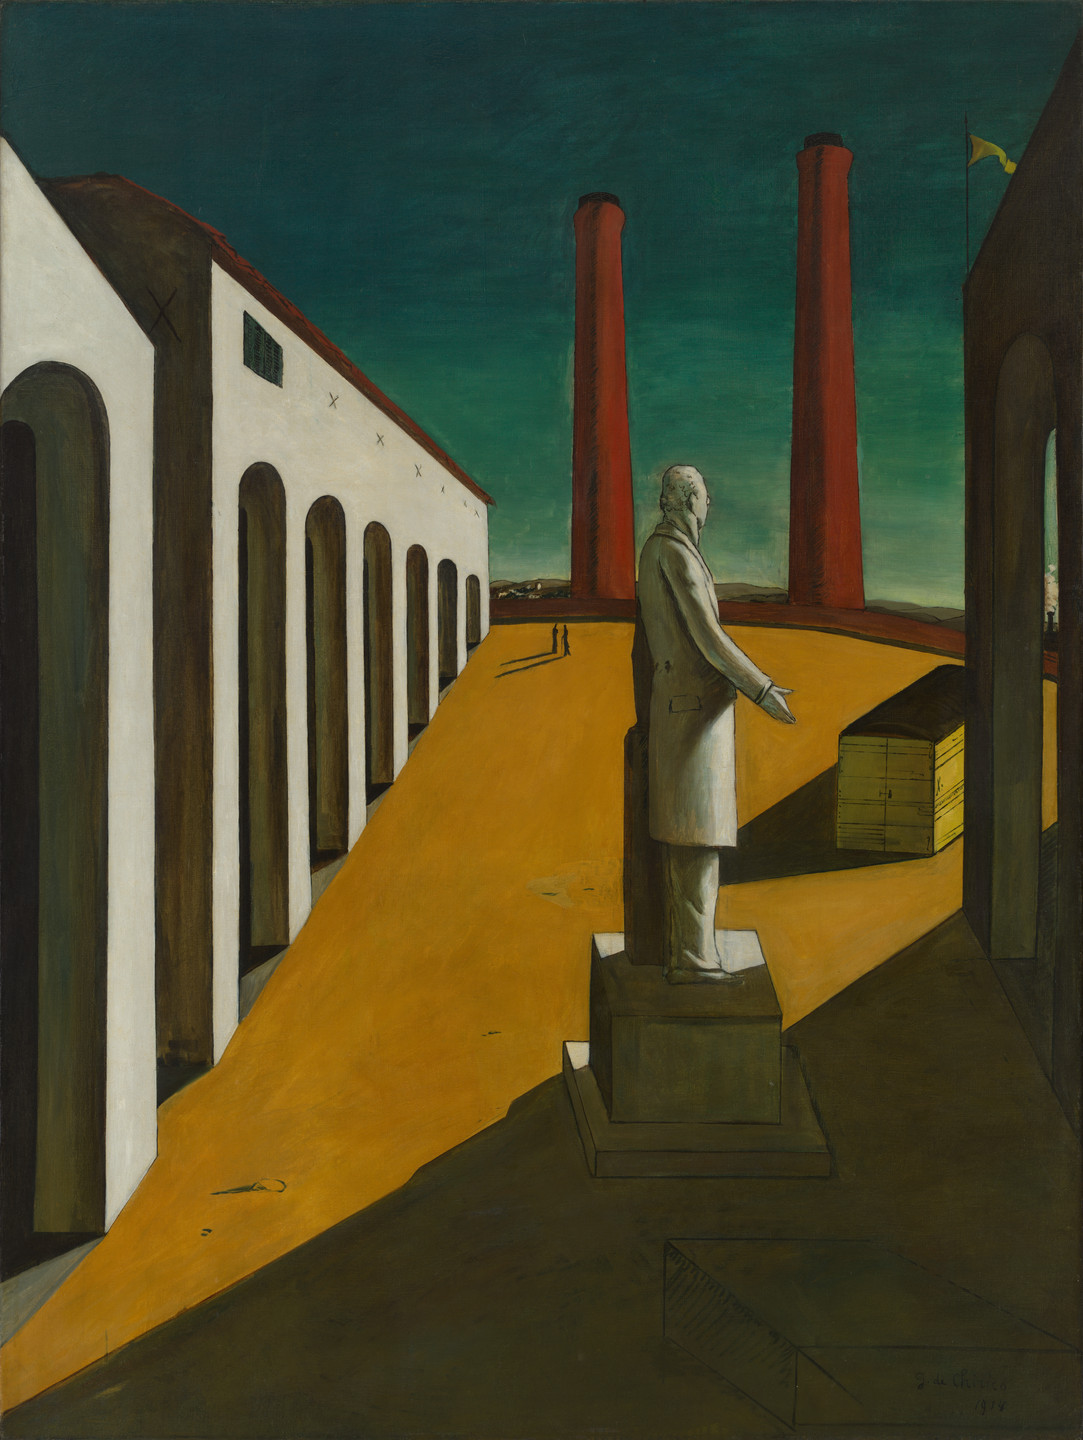 Giorgio de Chirico. The Enigma of a Day. Paris, early 1914